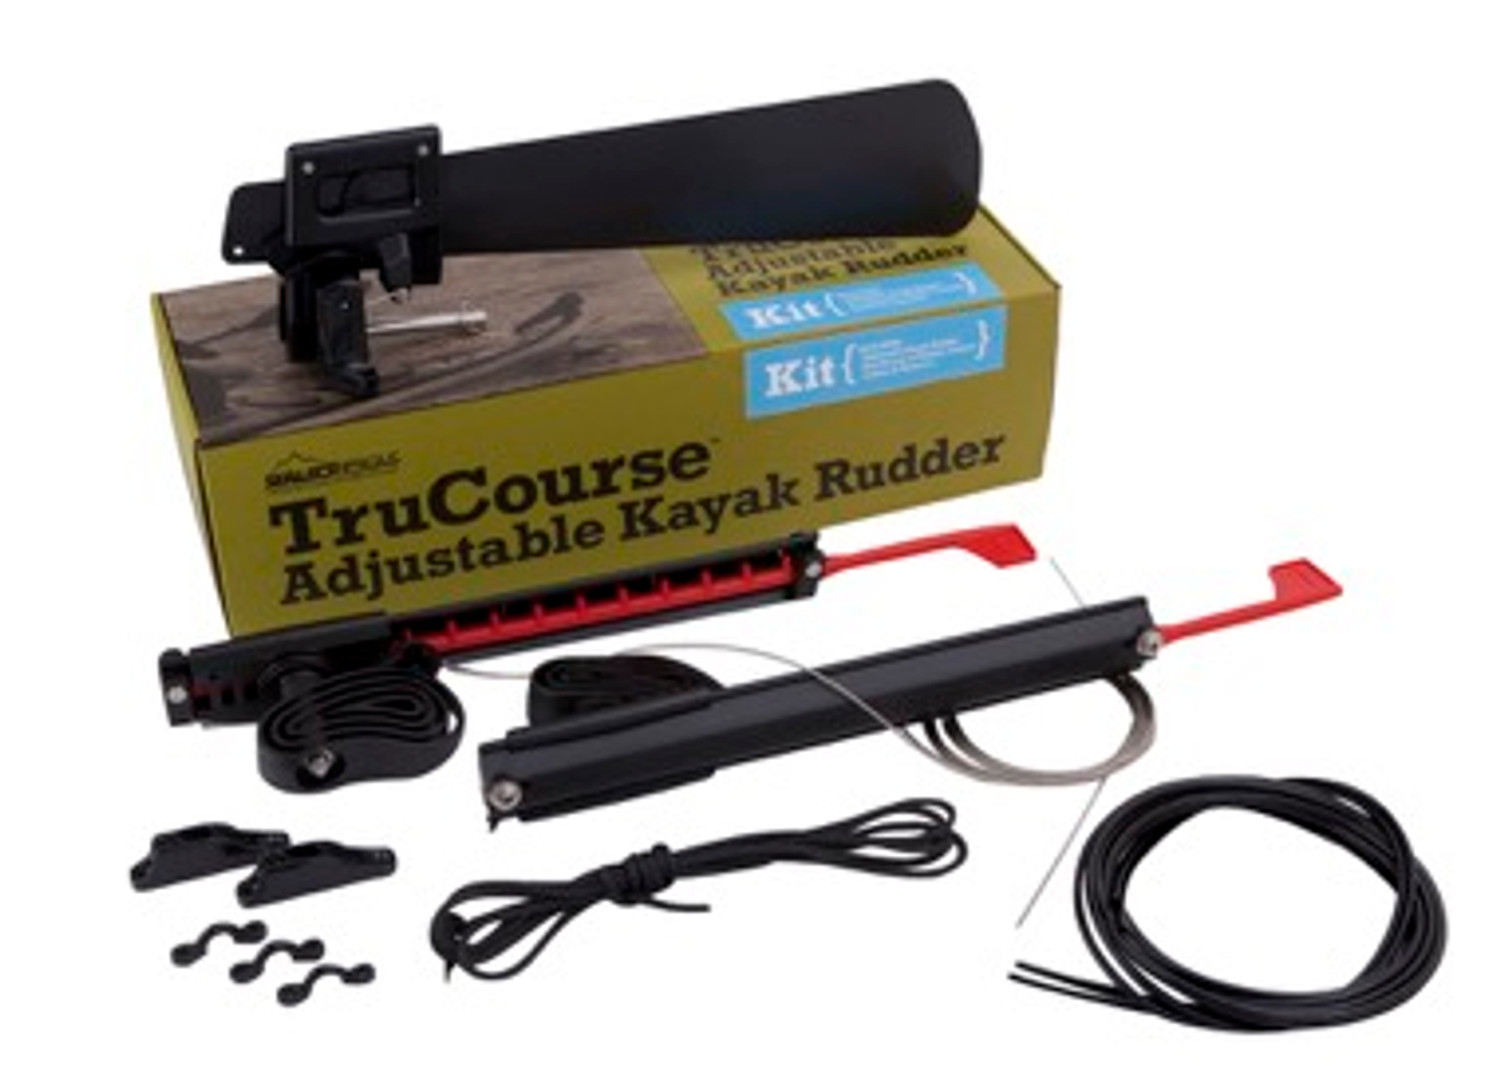 TruCourse Rudder Kit